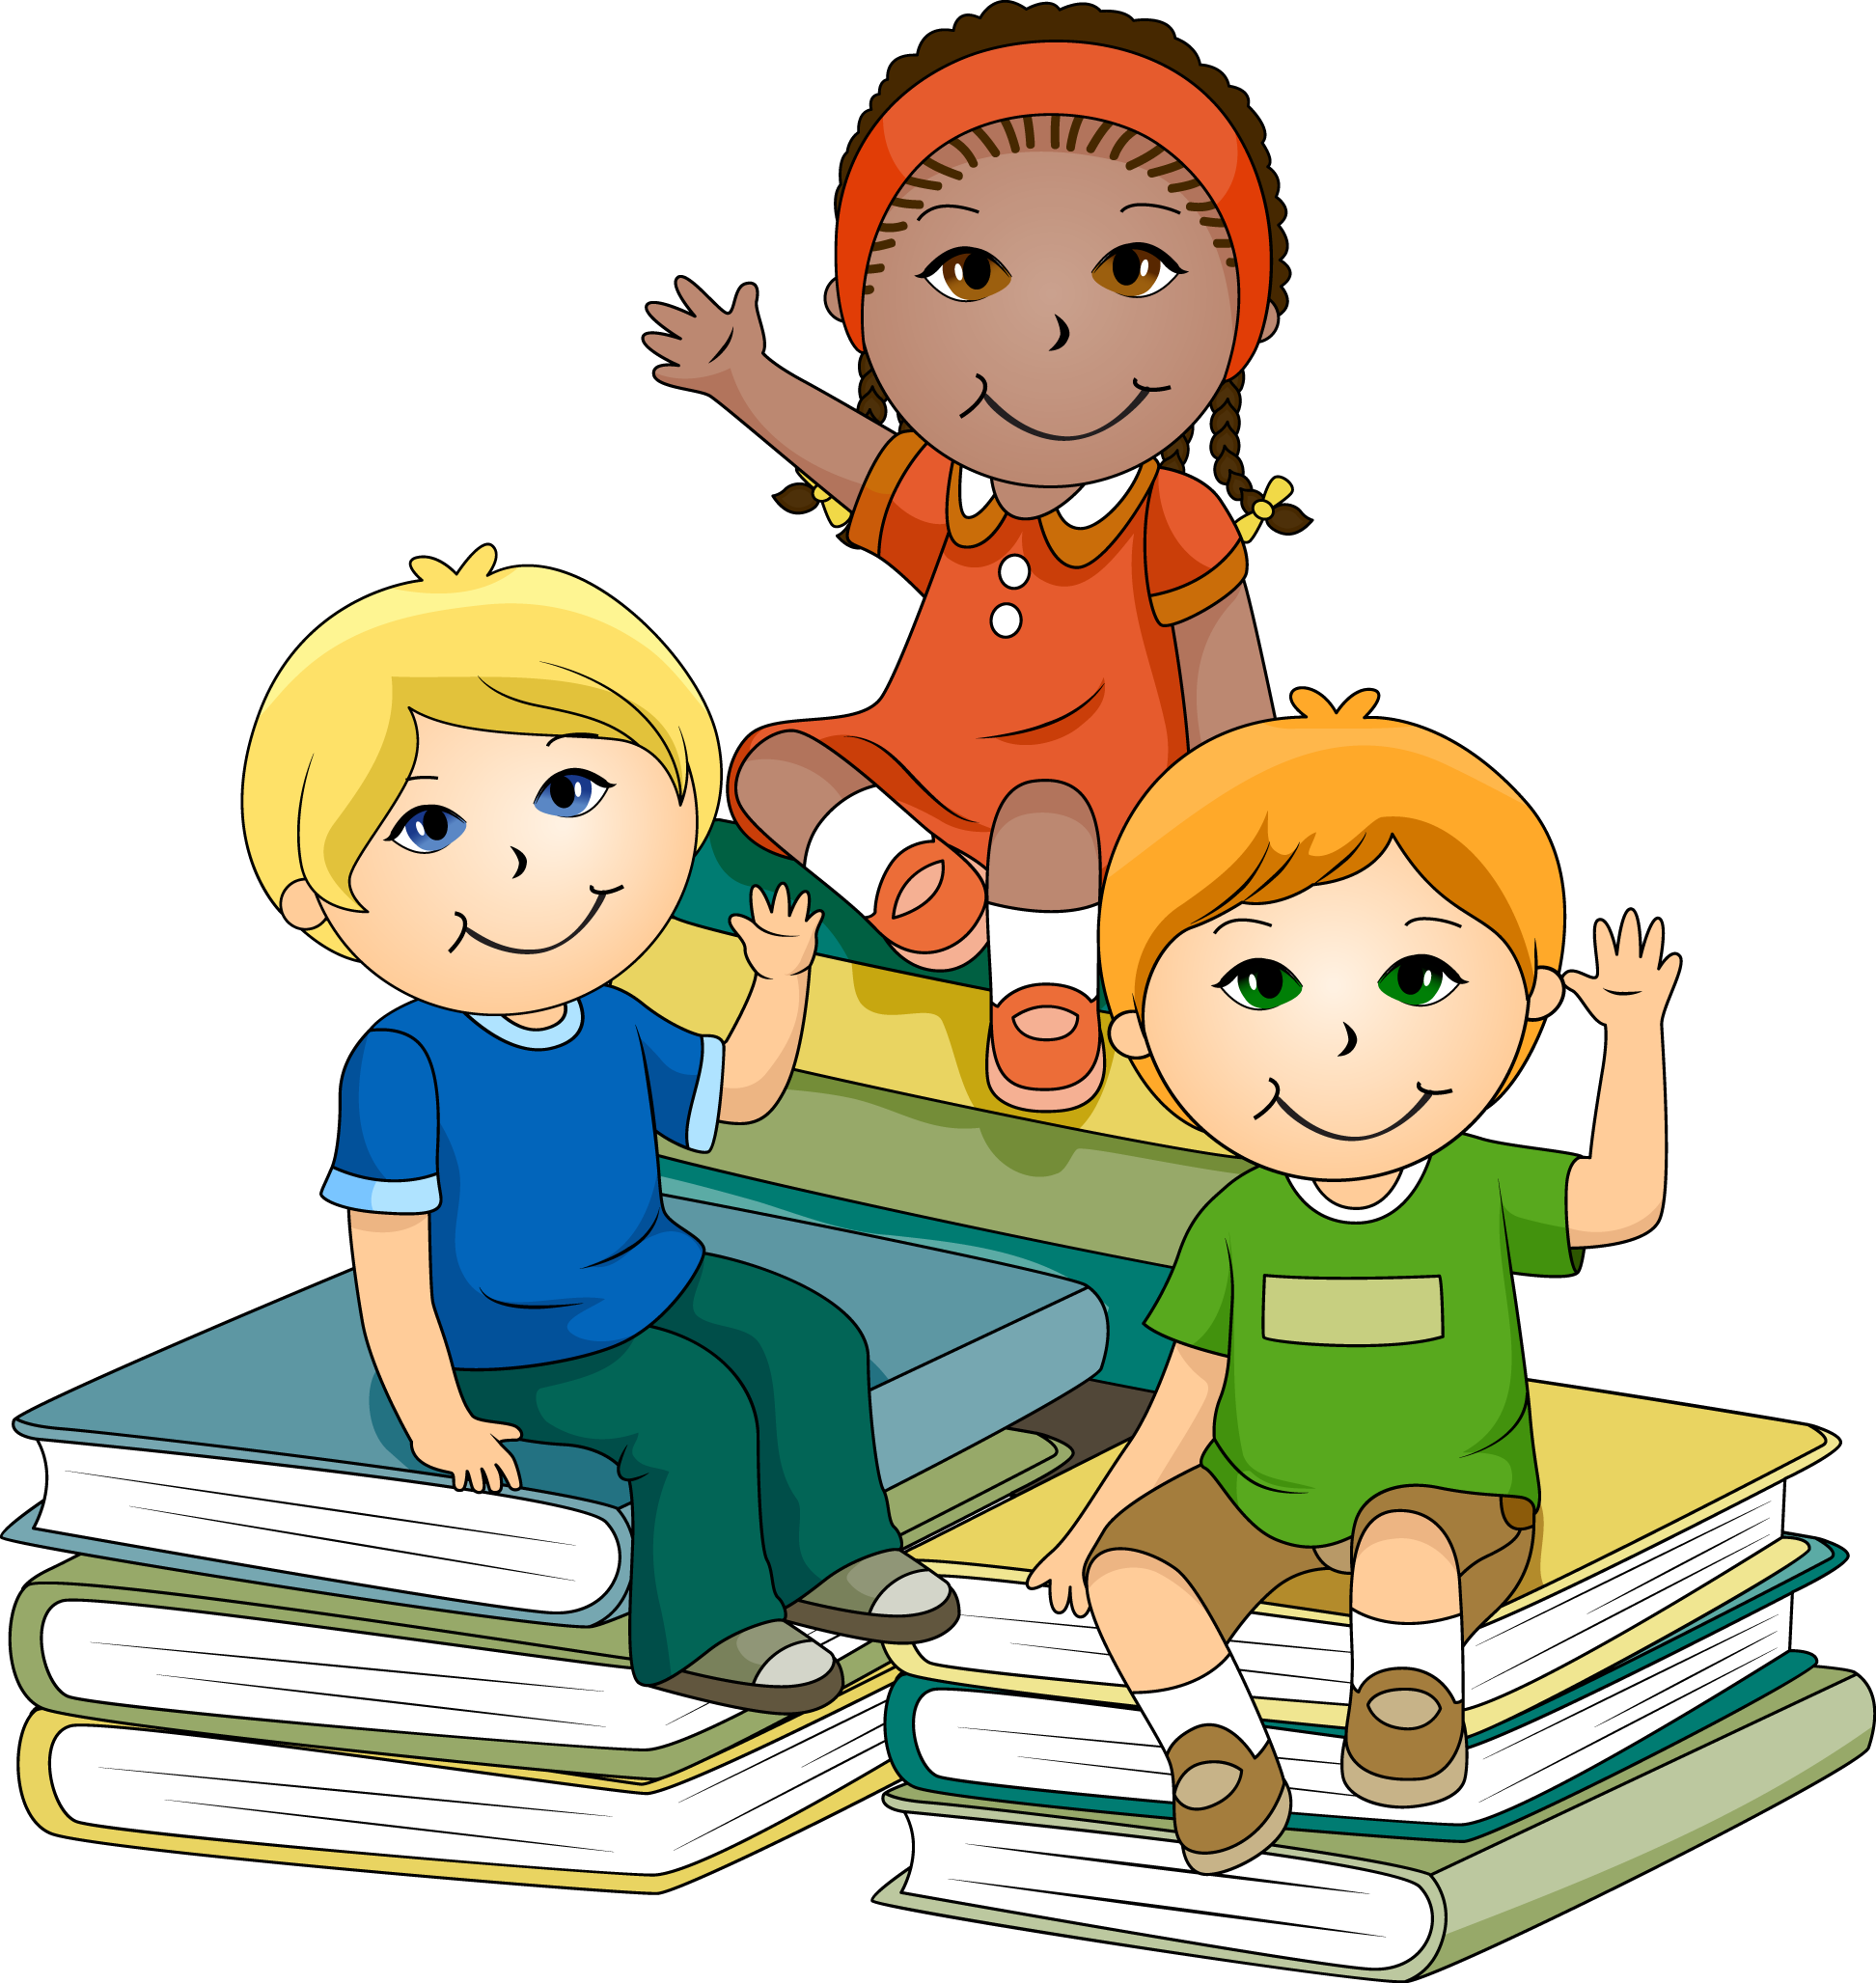 Bedtime story book clipart picture library Get Creative with This Free Kids Clip Art! | Pinterest | Anchor ... picture library